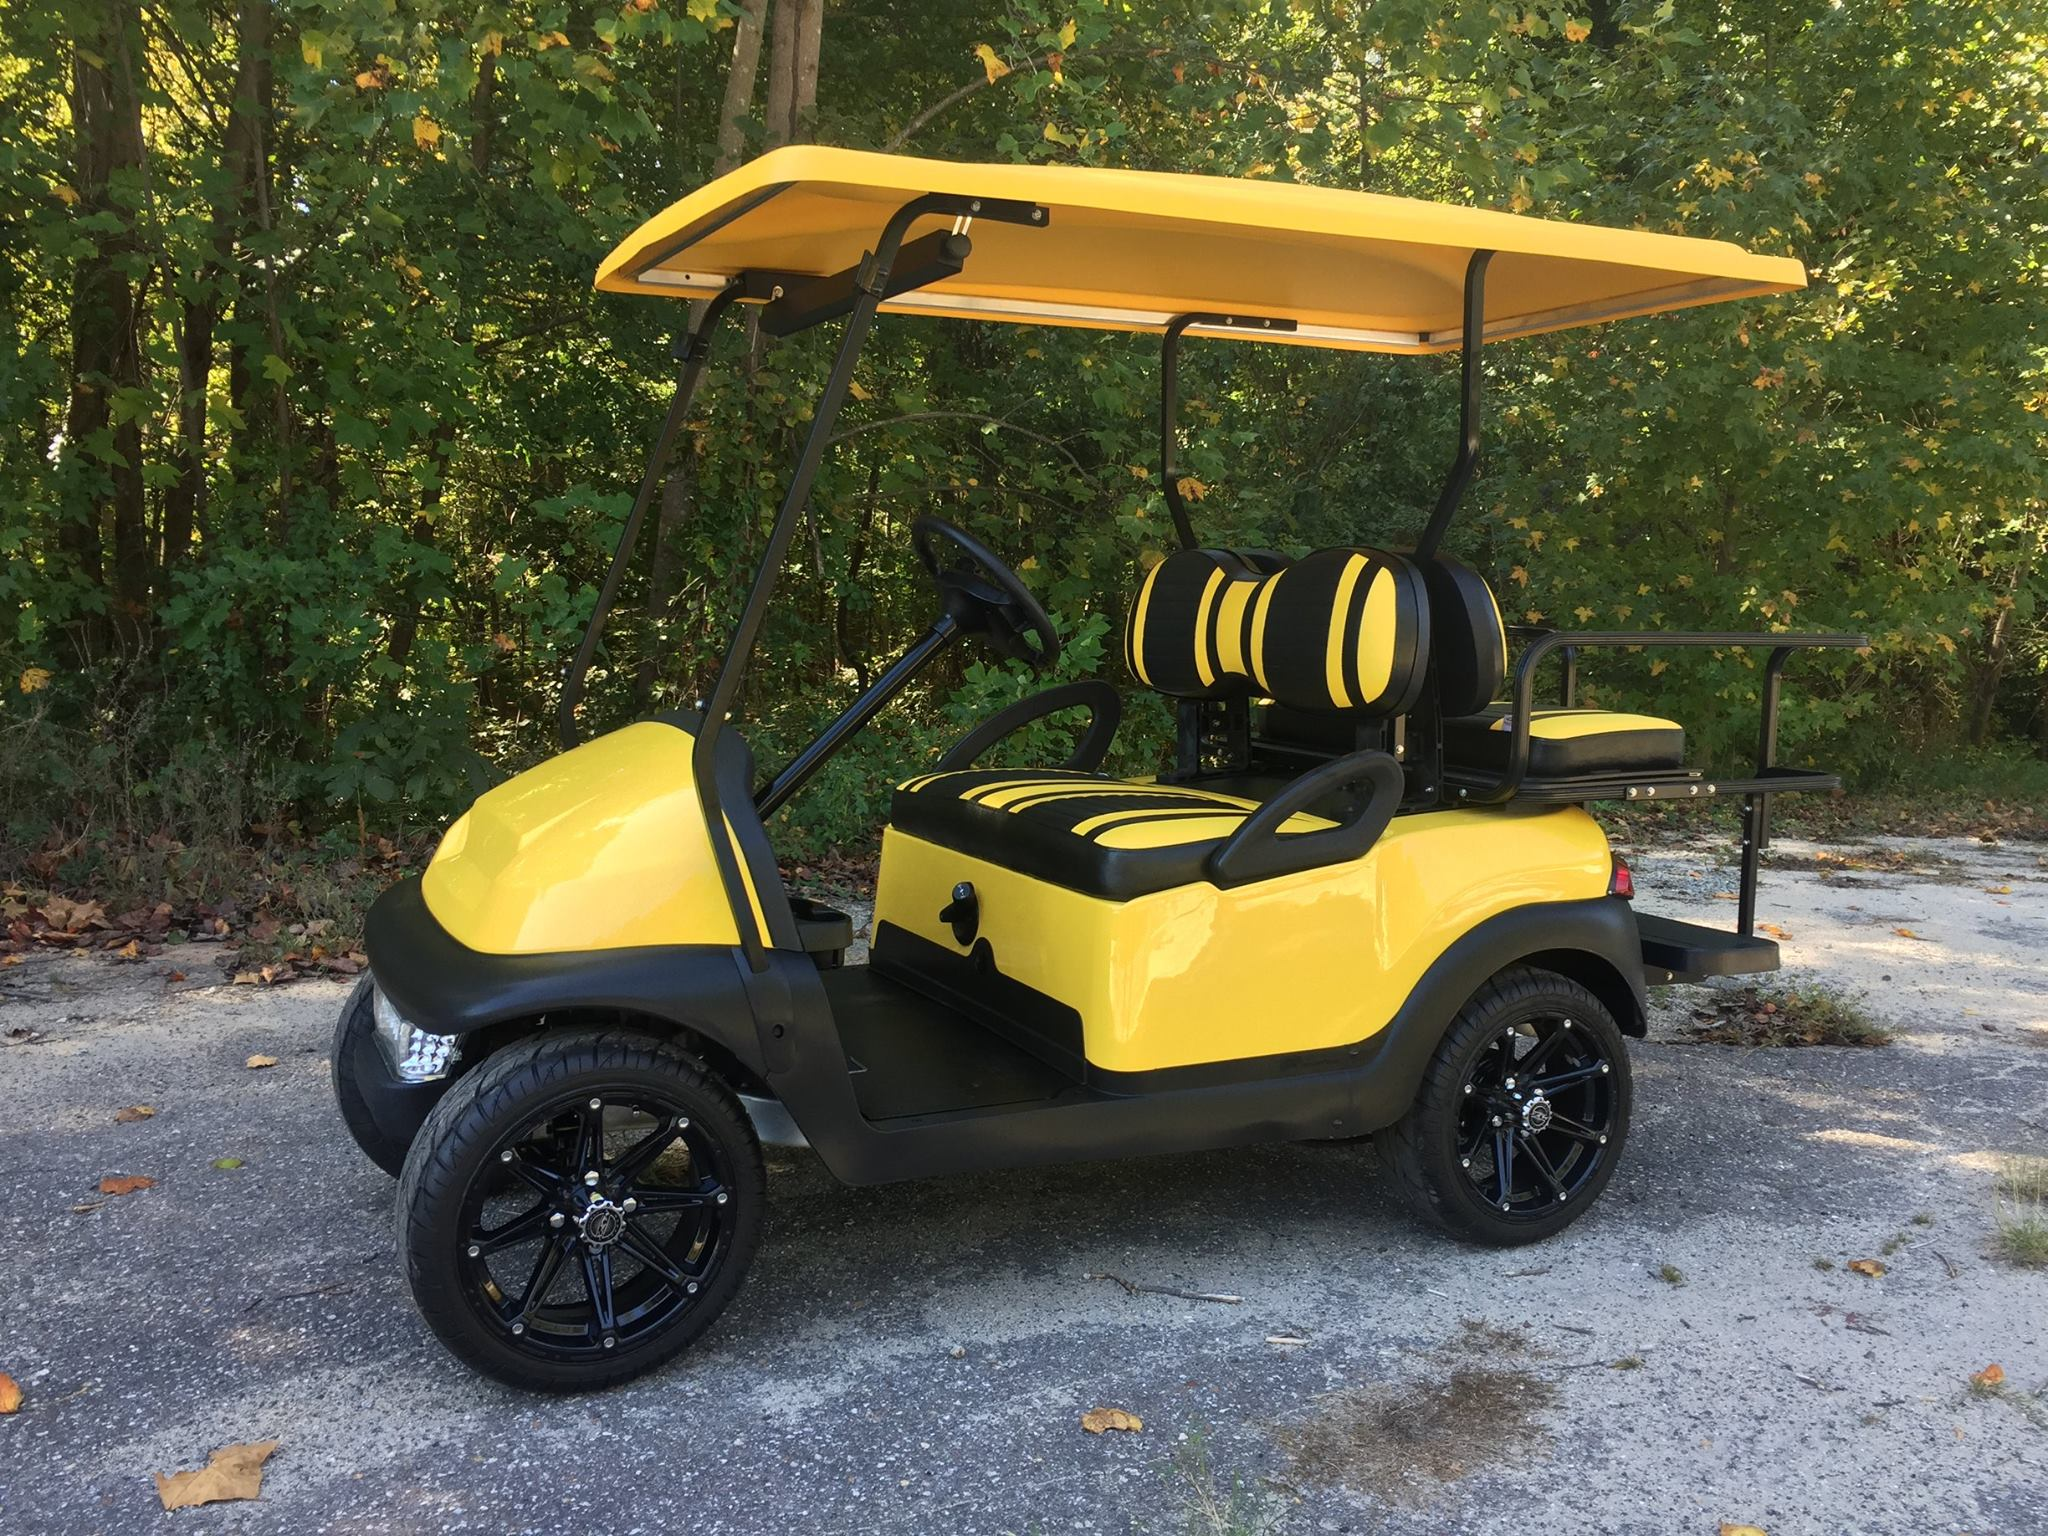 Used Cars Mooresville Nc >> New Club Car Golf Cars at Race City Golf Cars | Race City Golf Cars - Golf car sales, service ...